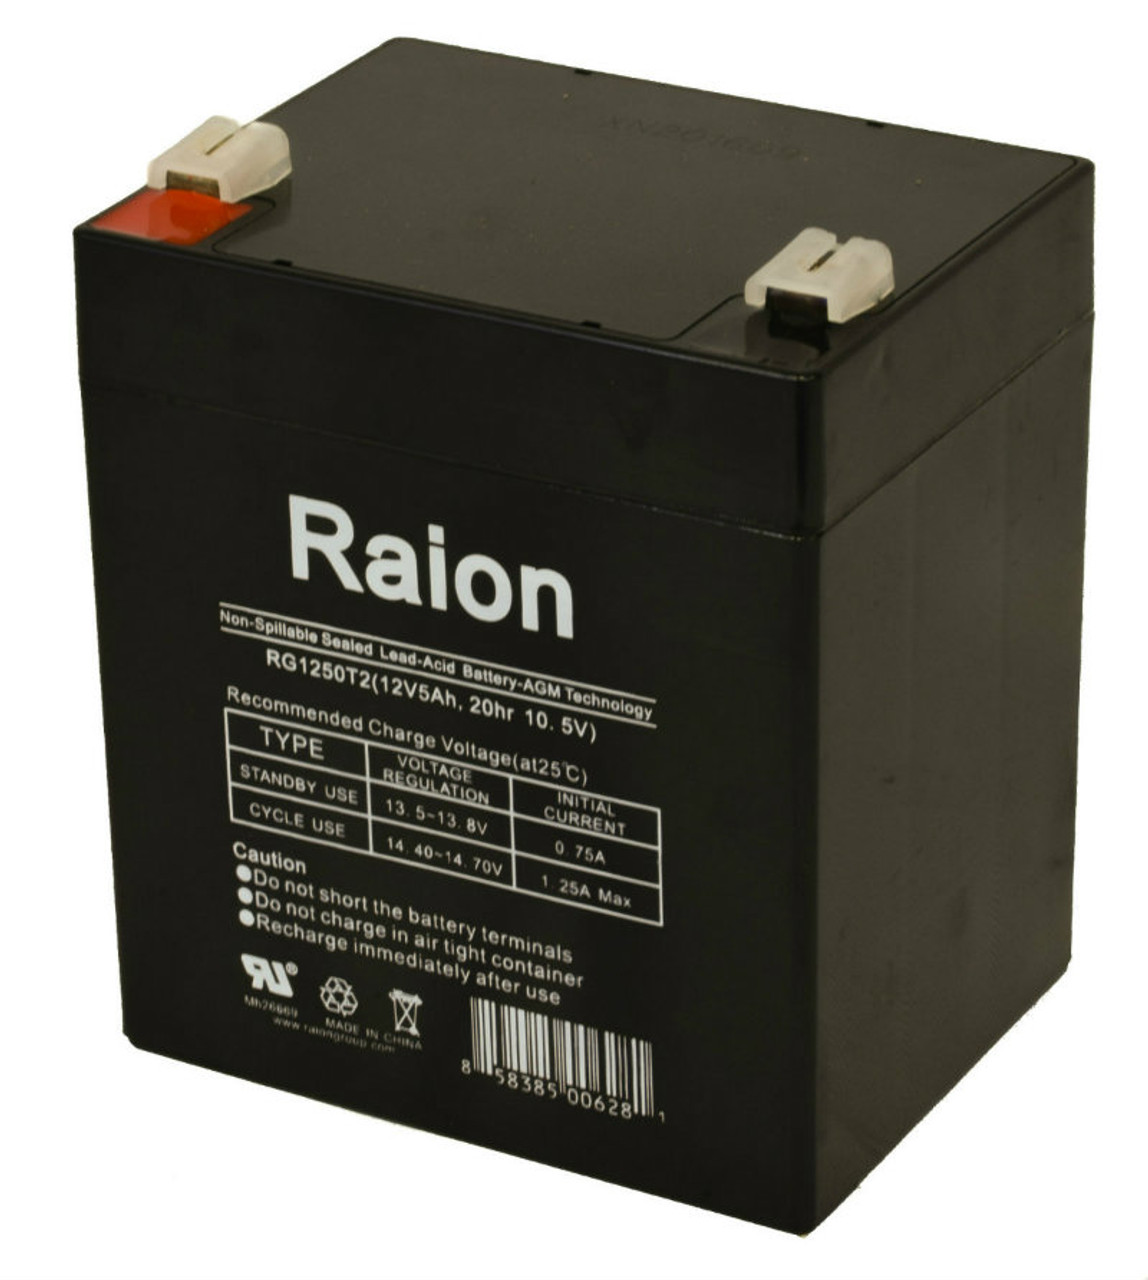 Raion Power 12V 5Ah SLA Battery With T1 Terminals For Alexander G1240